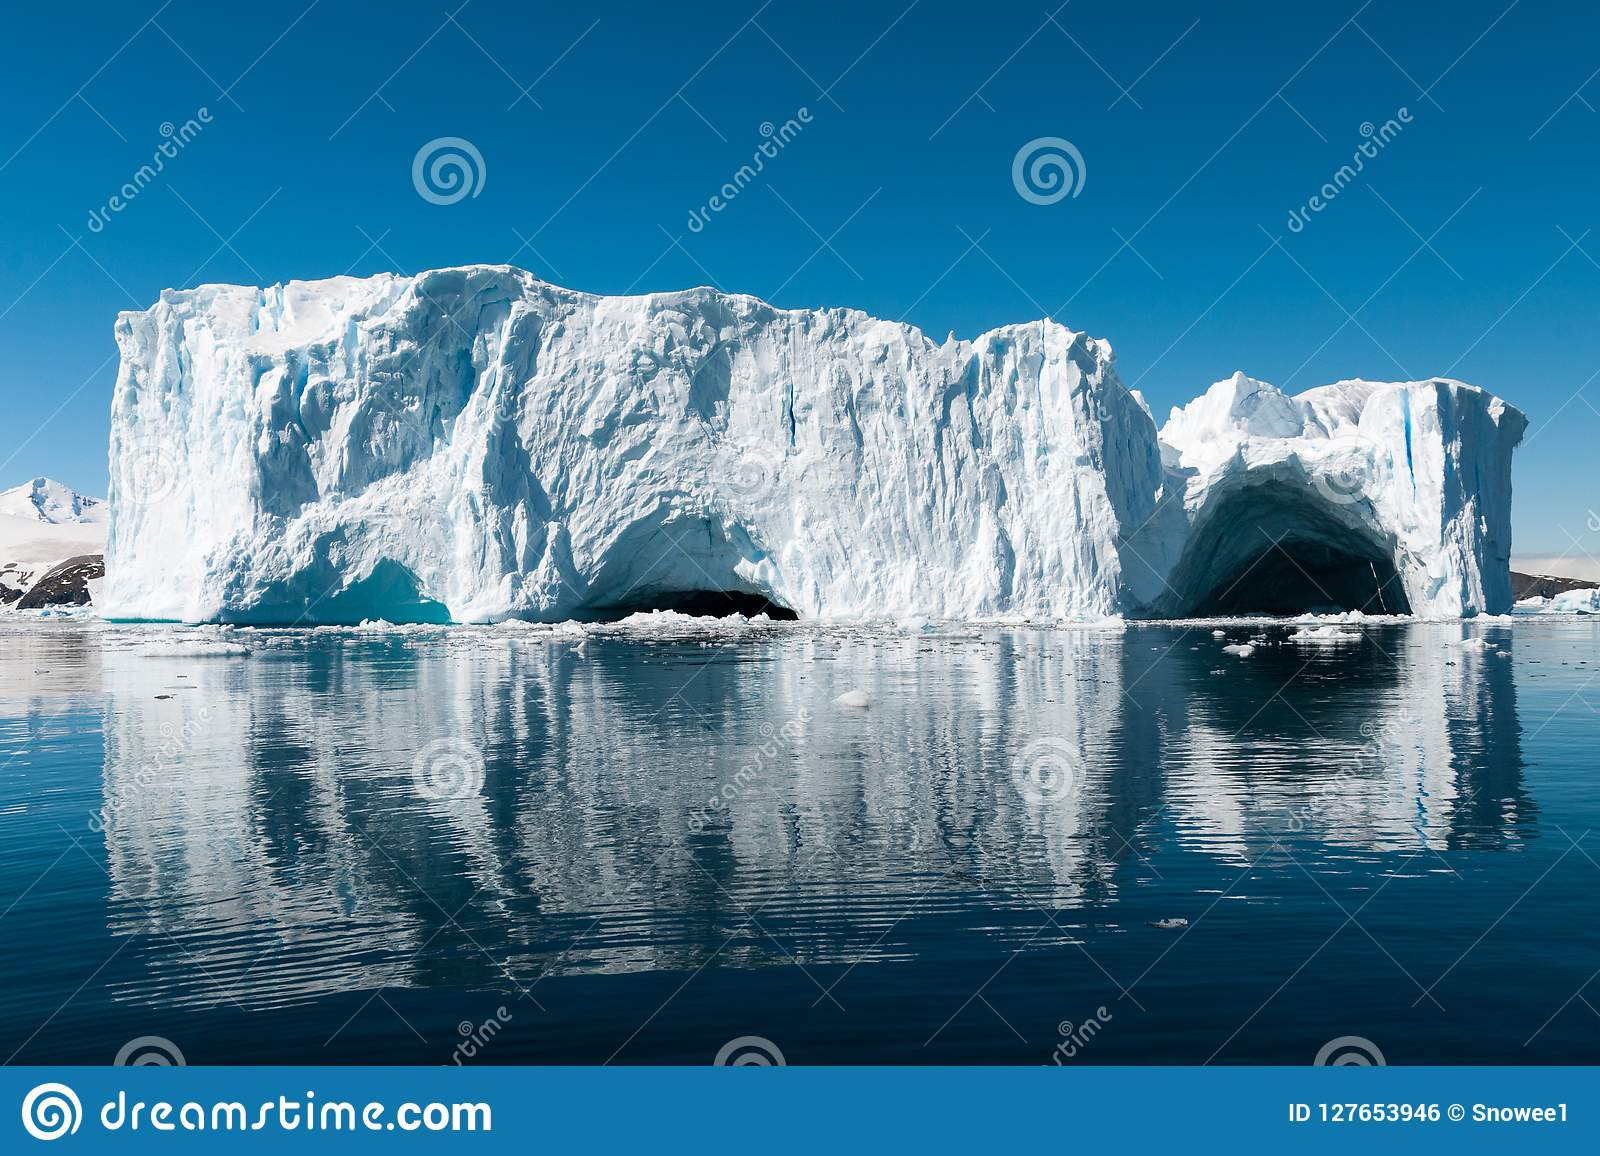 Large weathered iceberg with caves reflected in glassy water, Cierva Cove, Antarctic Peninsula